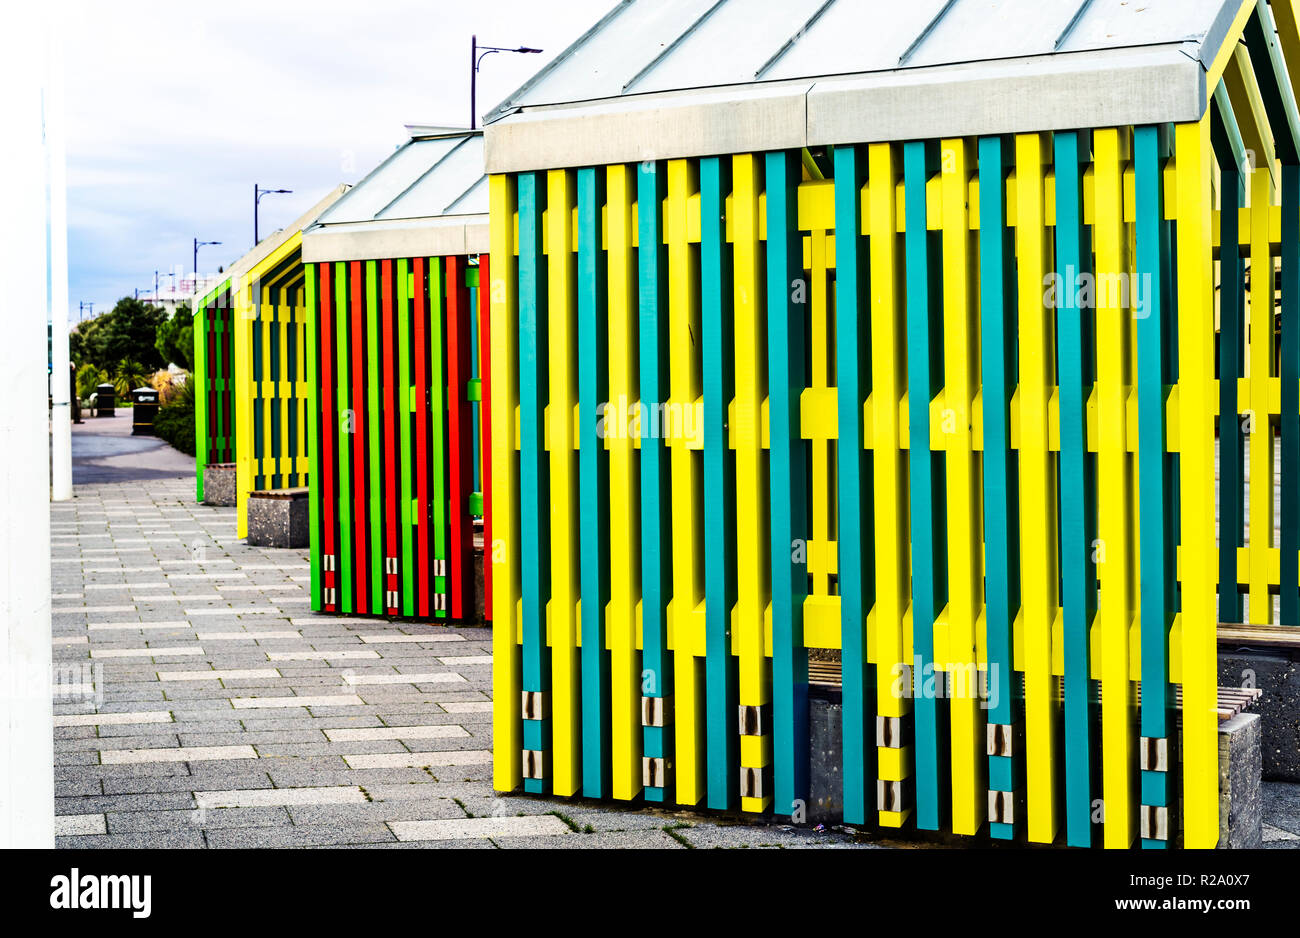 Colourful sun shelters on a beach side promenade. - Stock Image